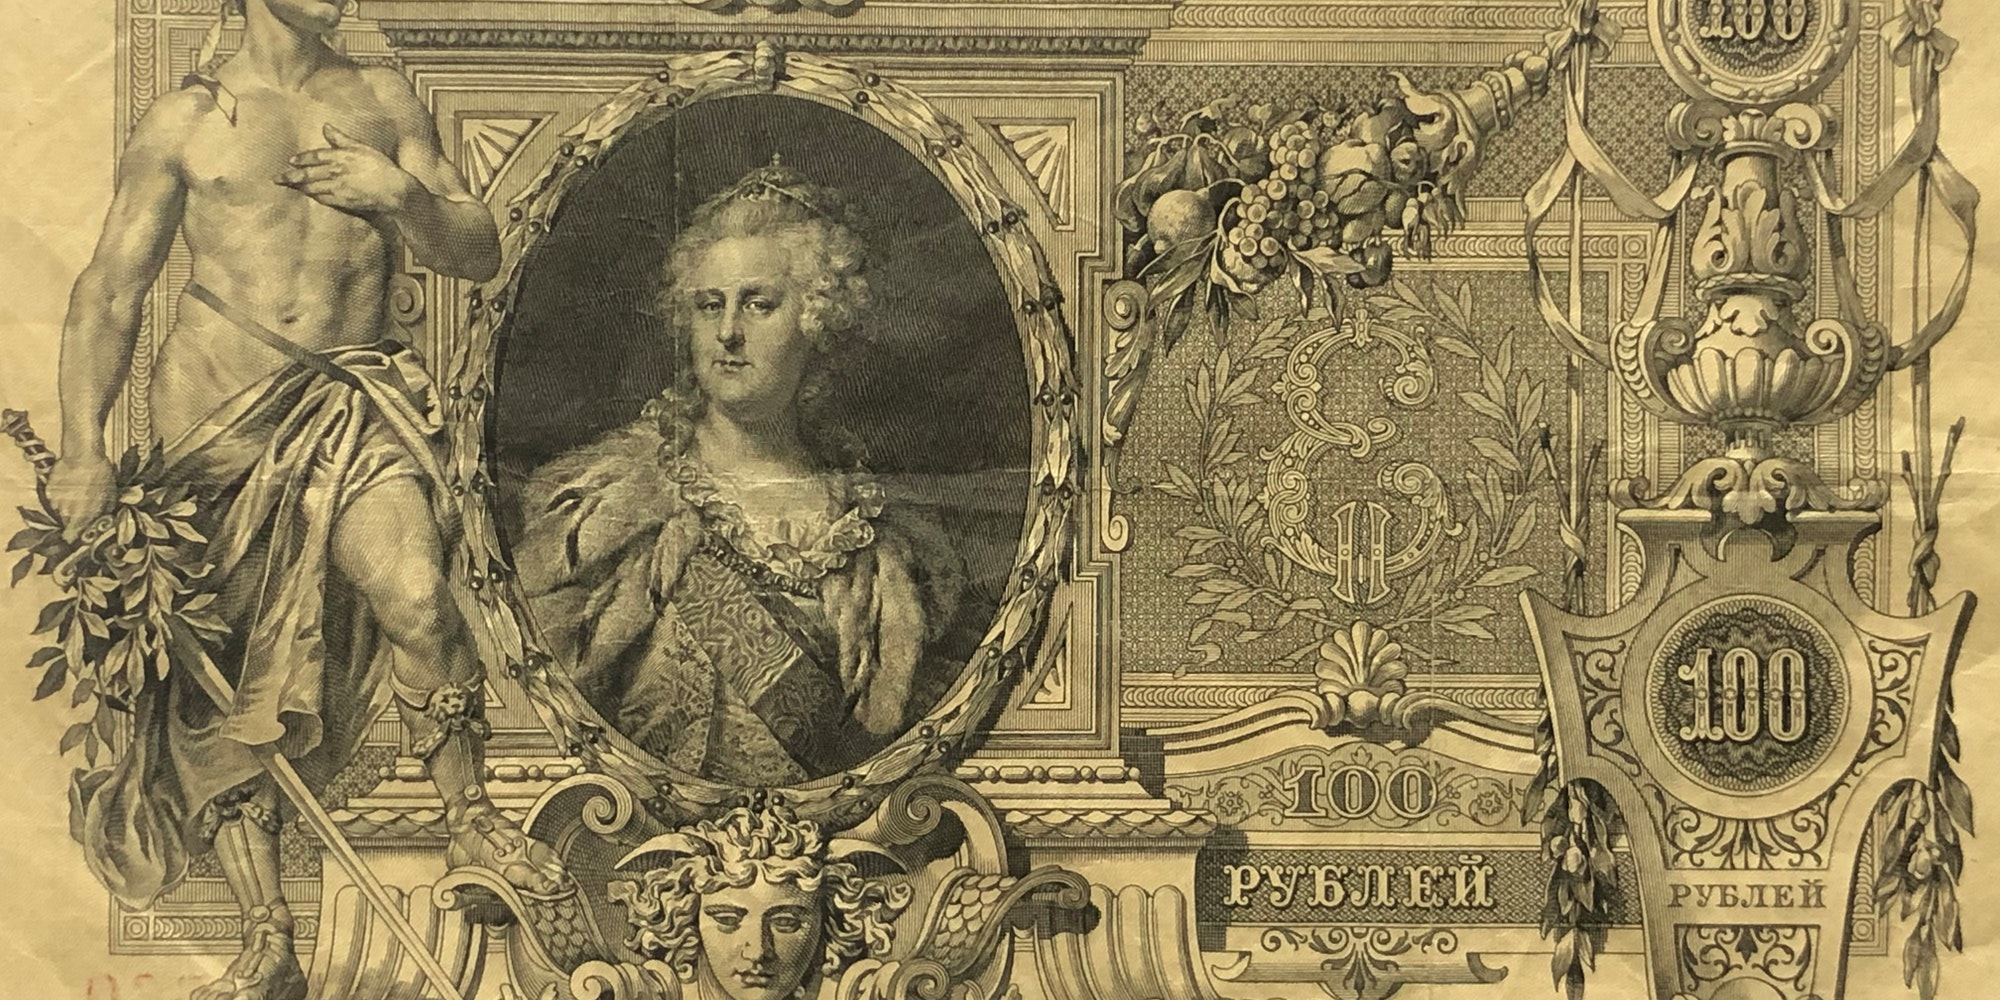 Cover Image for Translating Old Banknotes